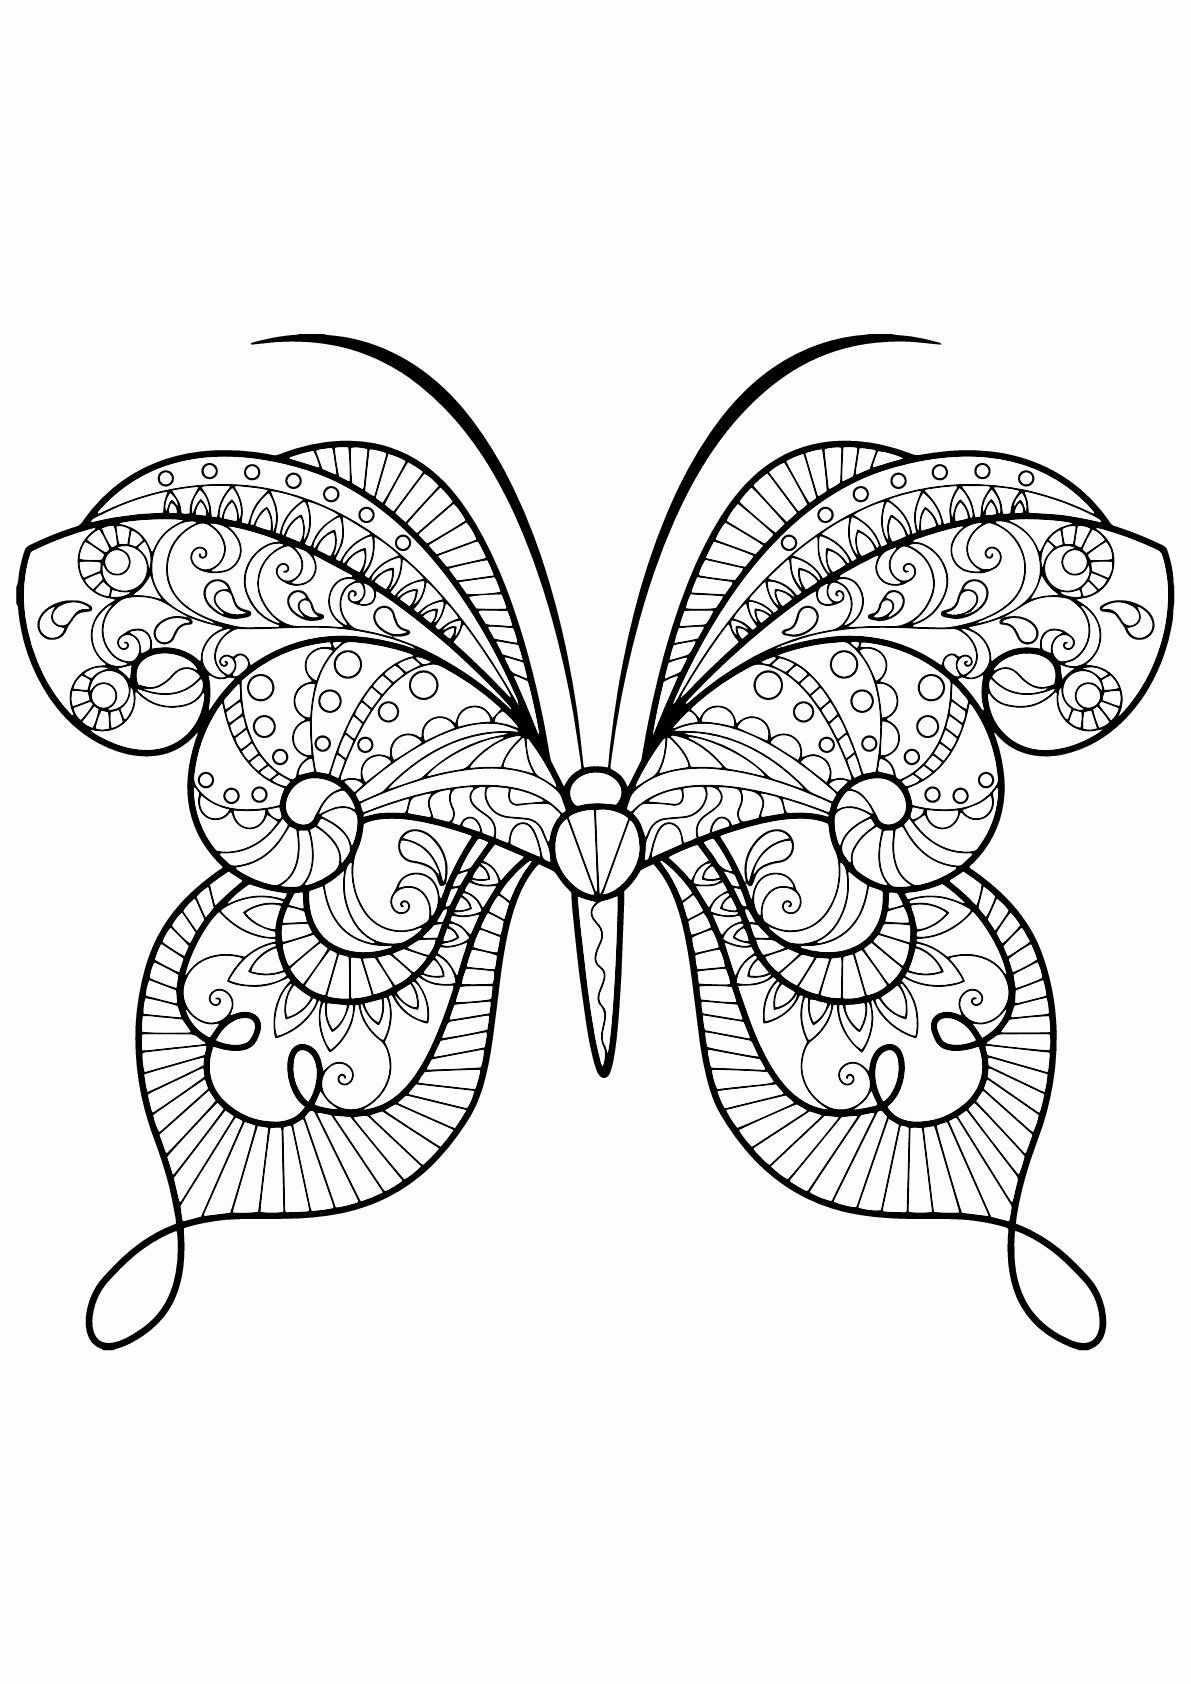 Butterfly Coloring Book For Adults Beautiful Butterfly Beautiful Patterns 15 Butterfl In 2020 Butterfly Coloring Page Insect Coloring Pages Butterfly Pictures To Color [ 1684 x 1191 Pixel ]